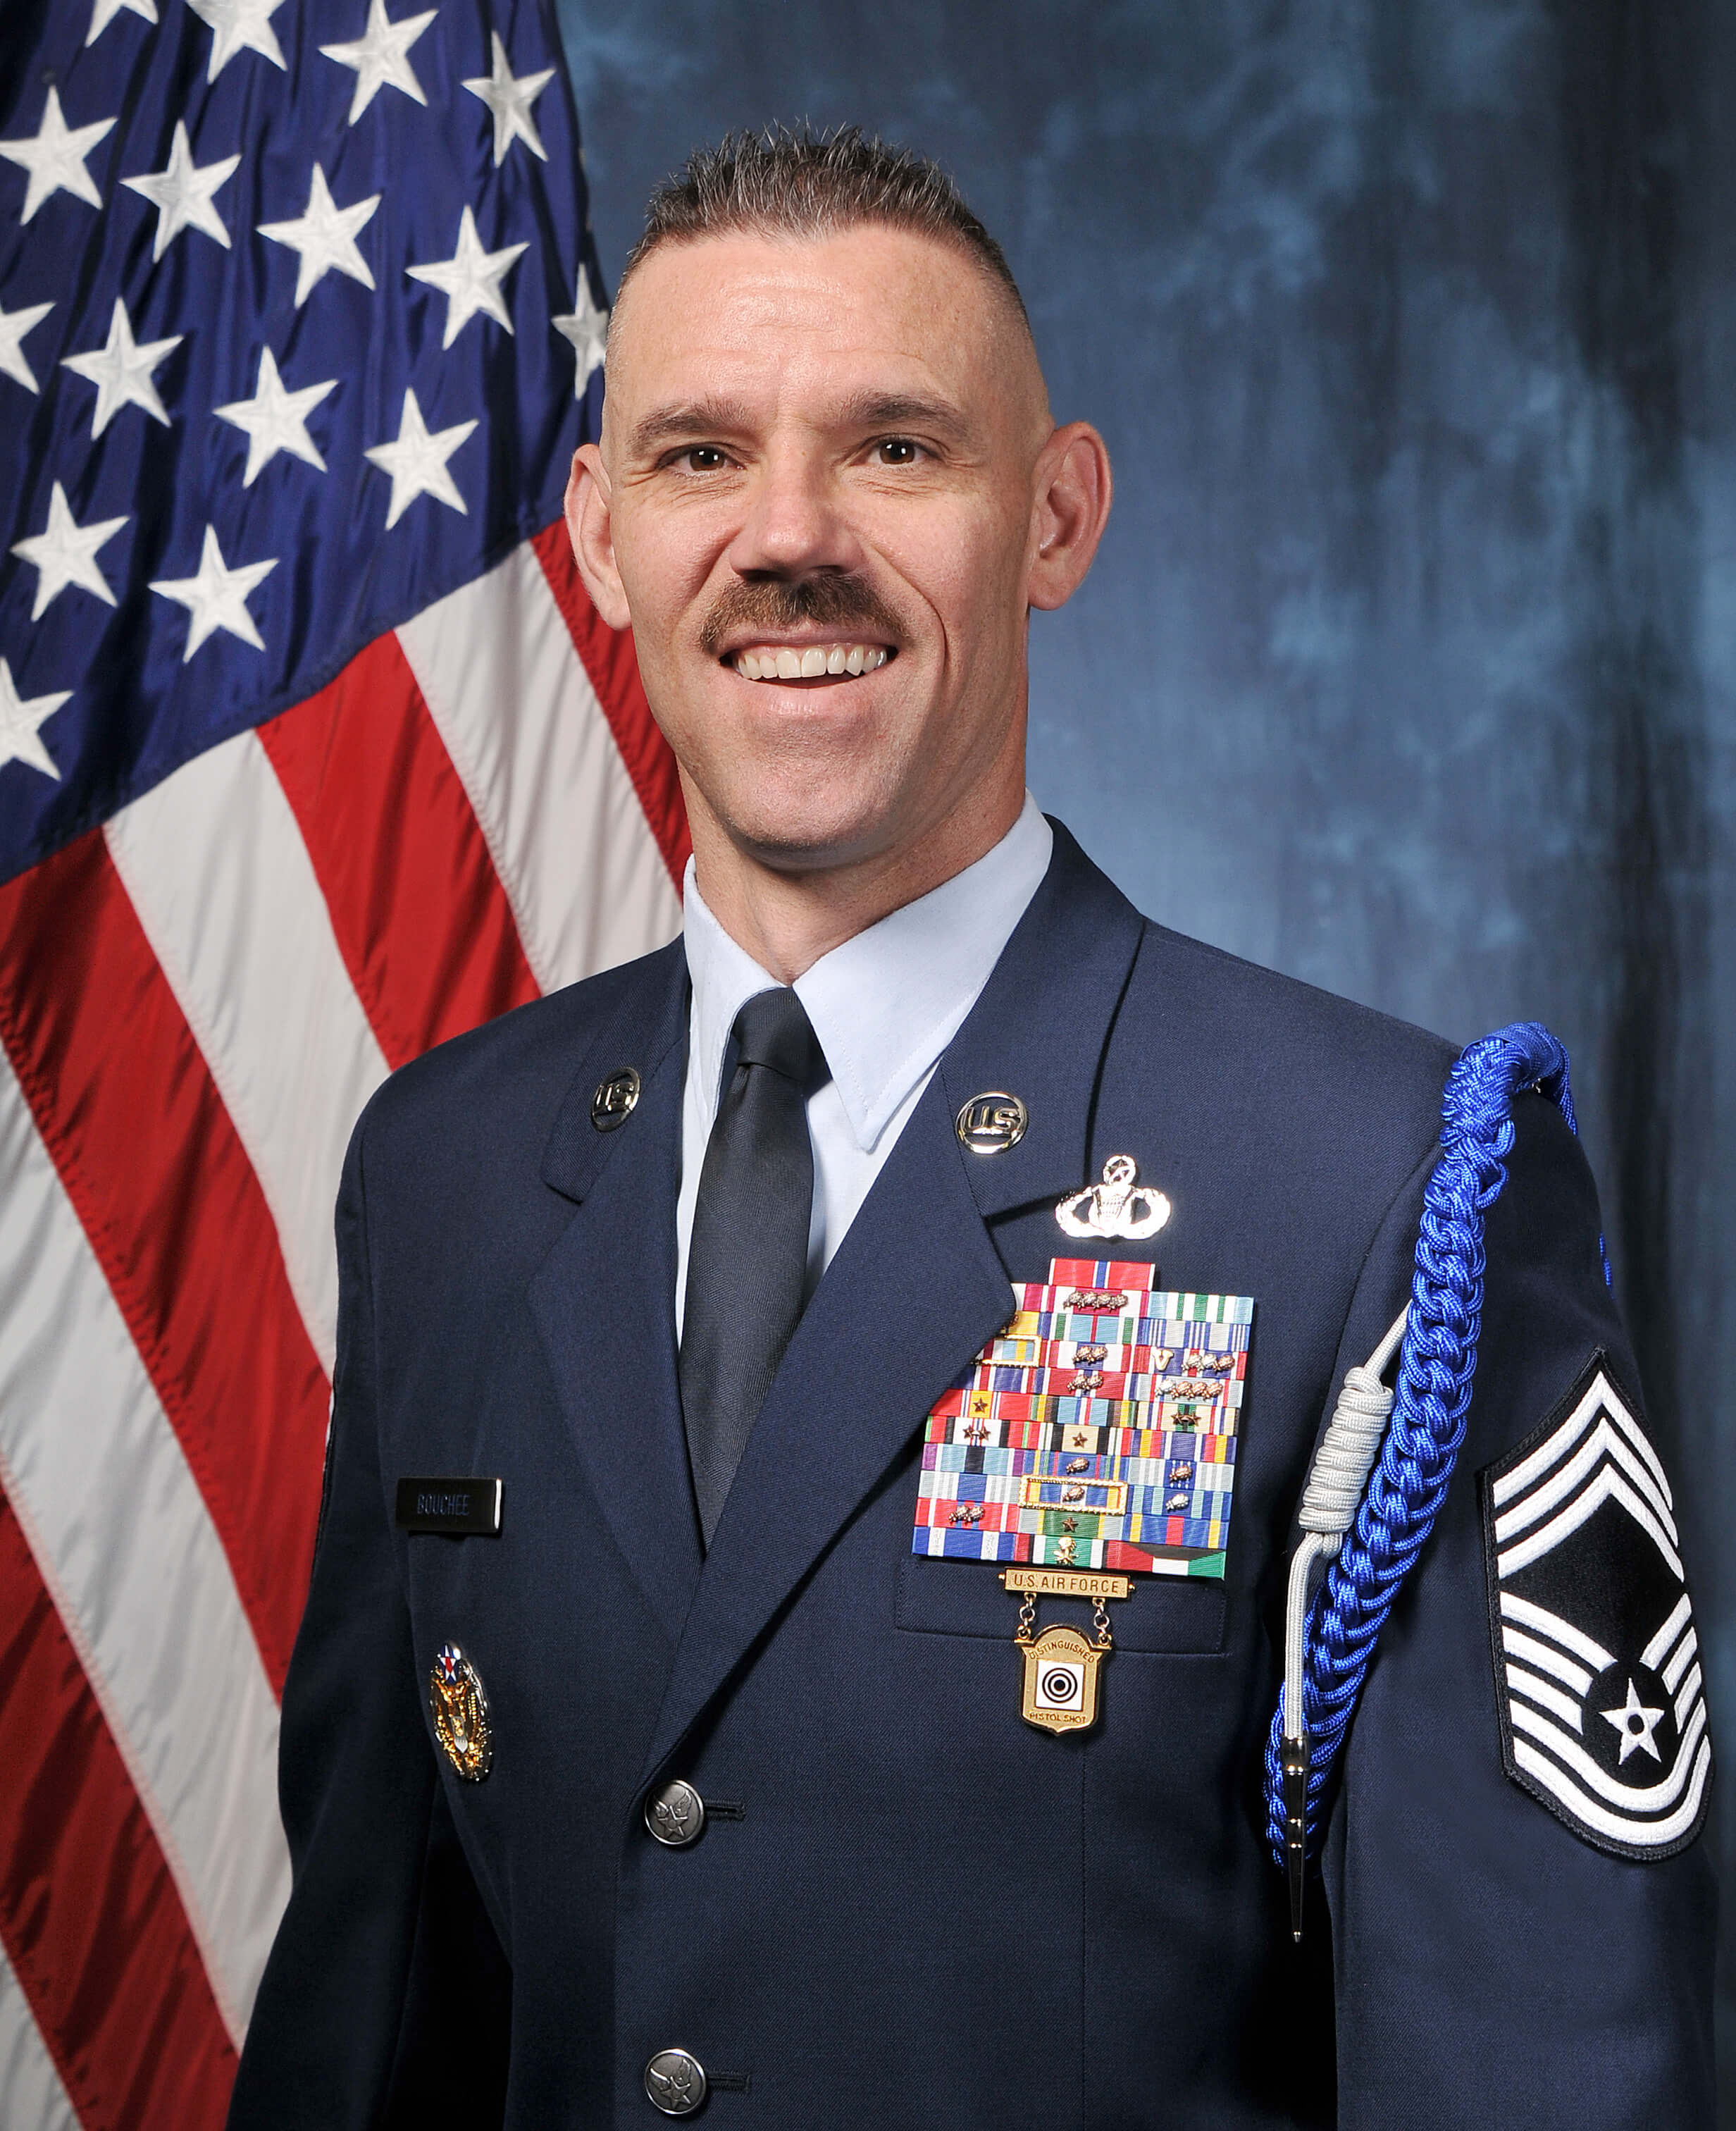 Air Force Academy Dean Of Faculty Announces Retirement: United States Air Force Academy